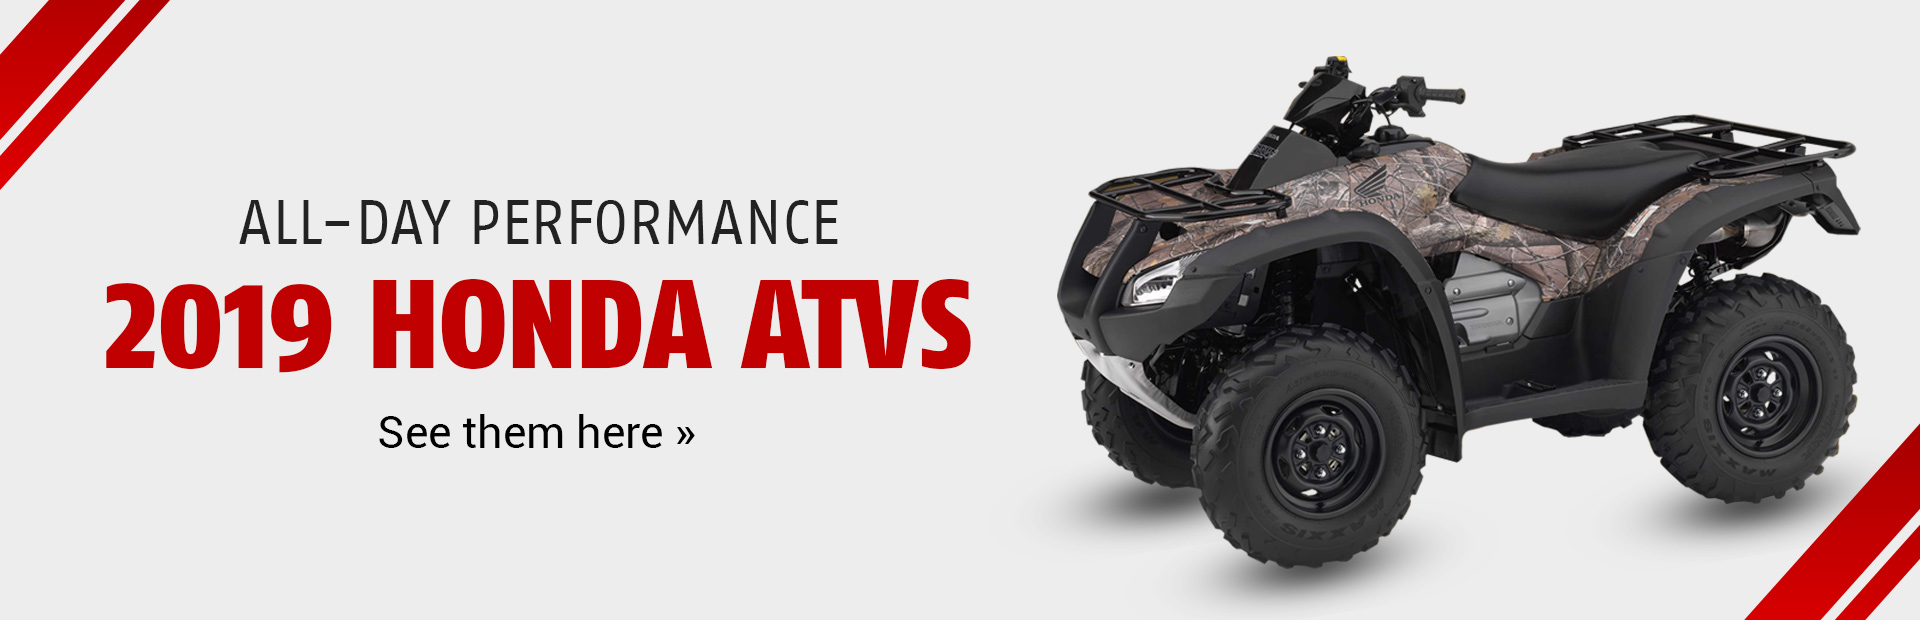 Home Smiths Sport Cycle Inc Tuscaloosa Al 205 553 1000 Honda Motorcycle Engine Repair 2019 Atvs Click Here To View The Models